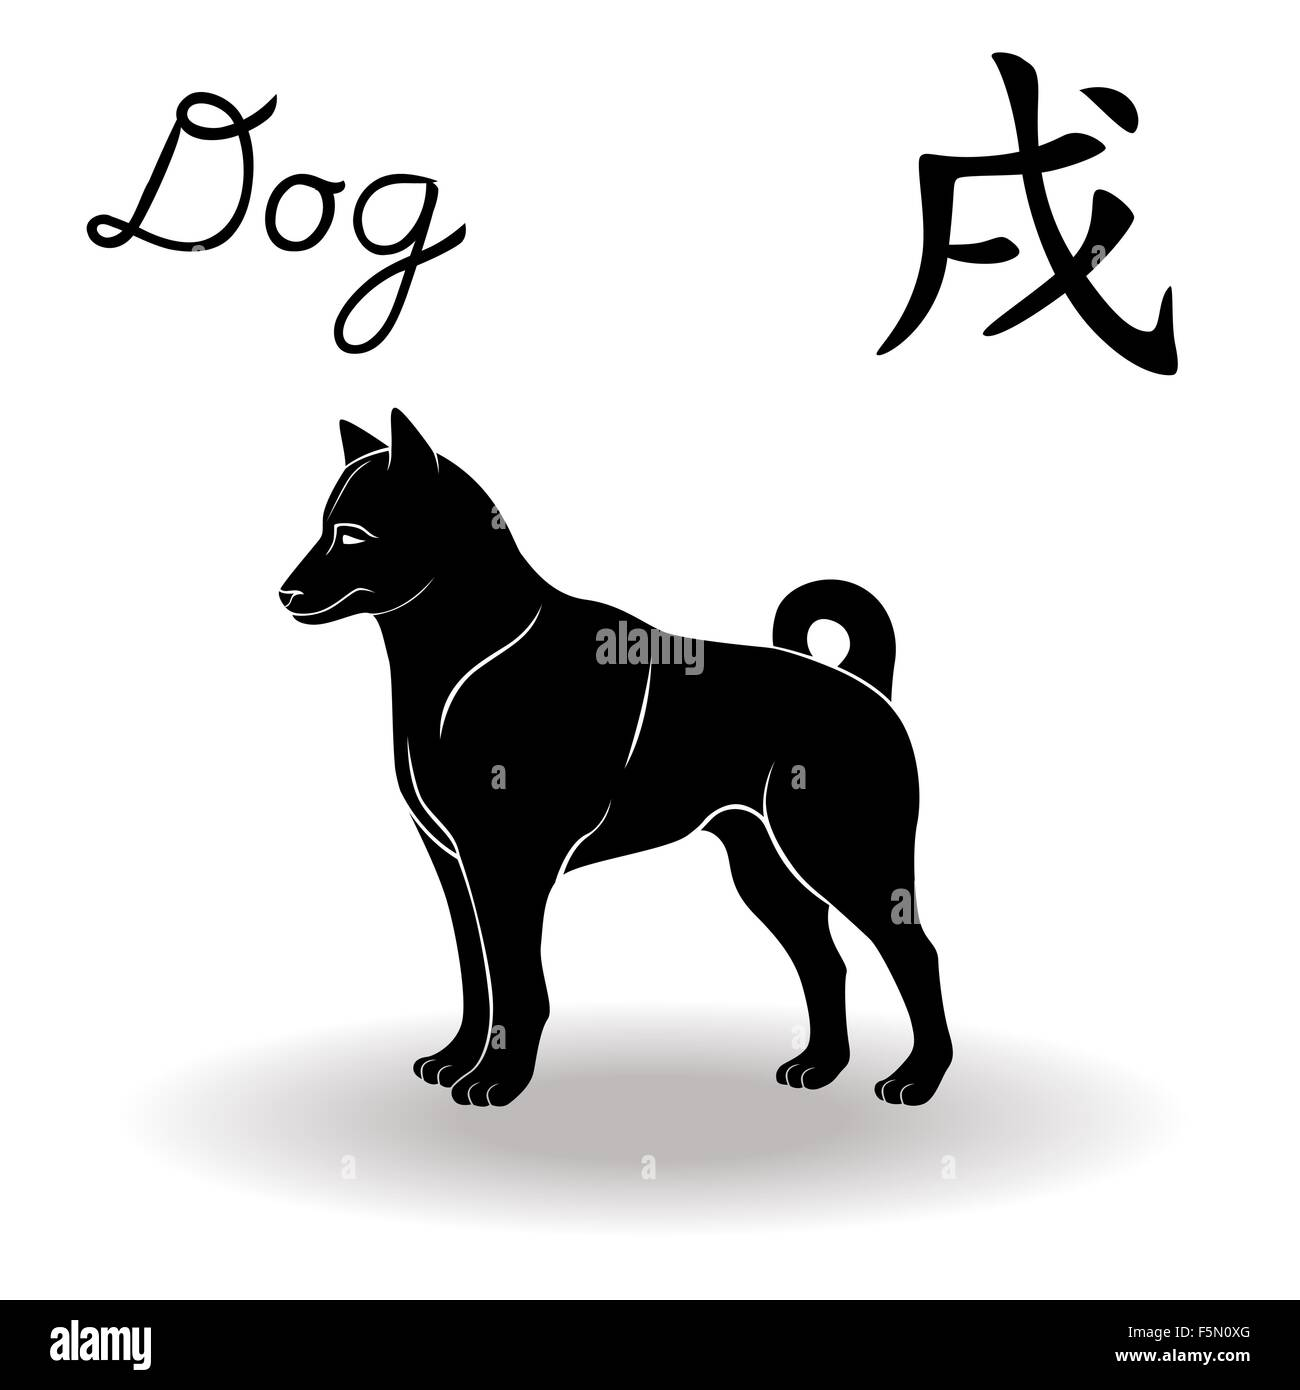 Chinese zodiac sign dog fixed element earth symbol of new year chinese zodiac sign dog fixed element earth symbol of new year on the chinese calendar hand drawn black vector stencil isolat biocorpaavc Gallery